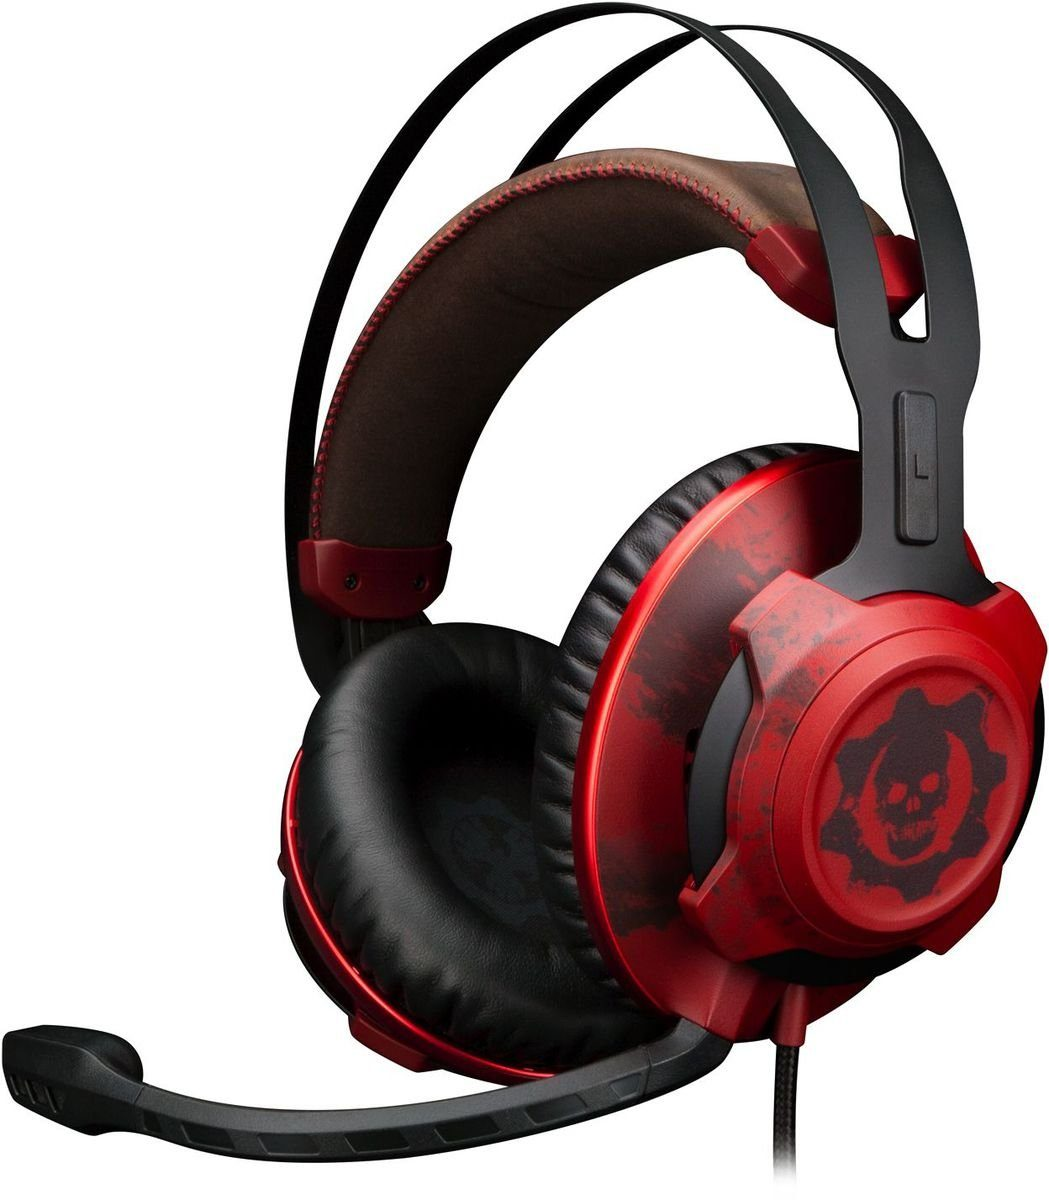 "HyperX Gaming-Headset »CloudX Revolver ""Gears of War""«"